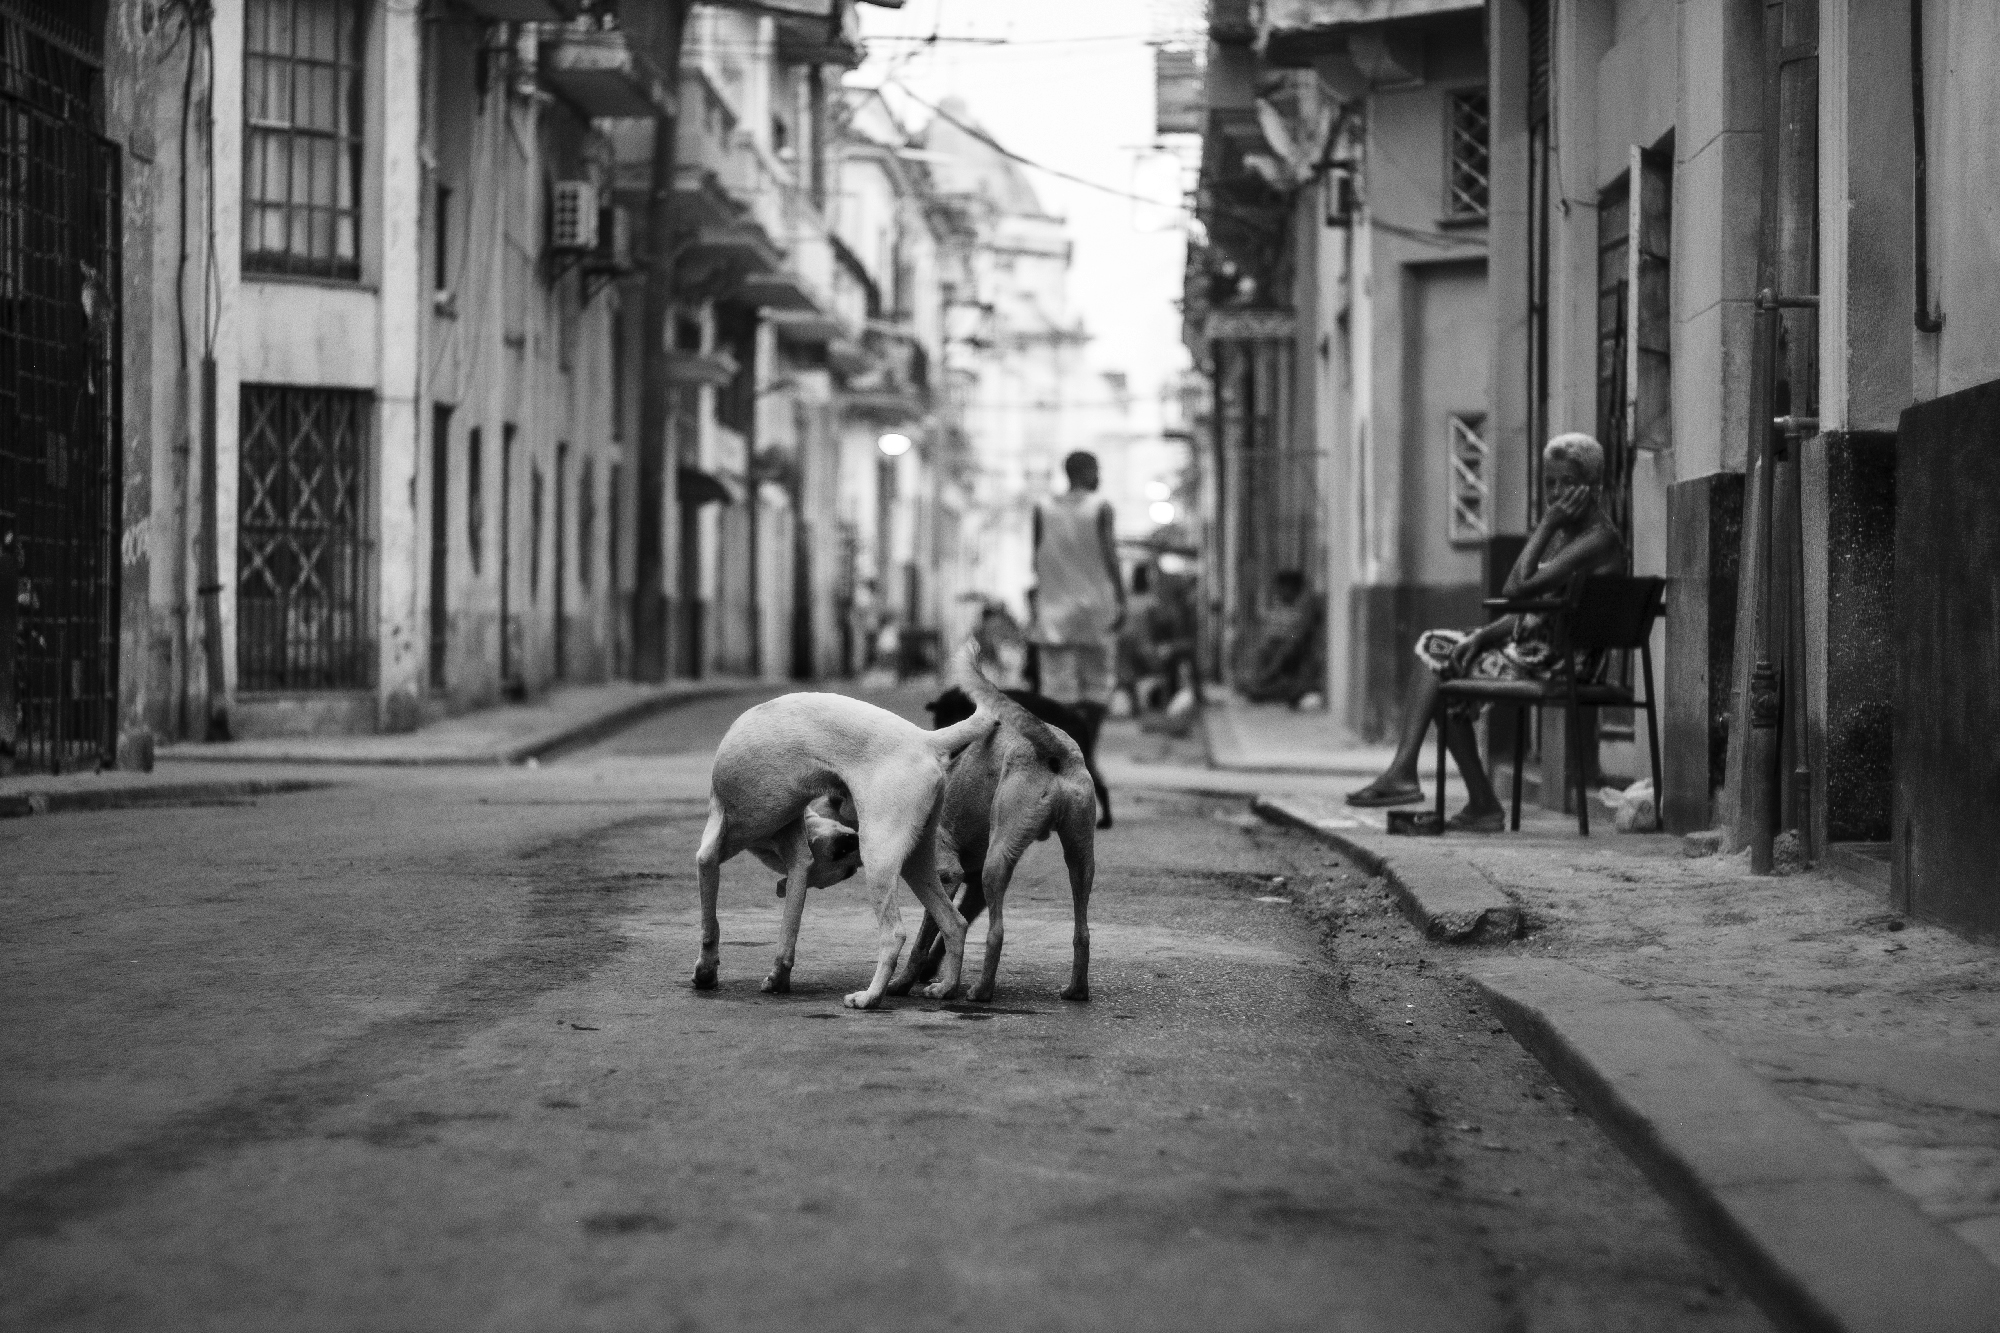 All throughout Old Havana, street dogs and cats ruled supreme. Most of the time they found a shadow to lie in to wait out the sweltering heat. But once the sun began to set and traffic calmed a bit, it was time to play and find scraps to nibble on.